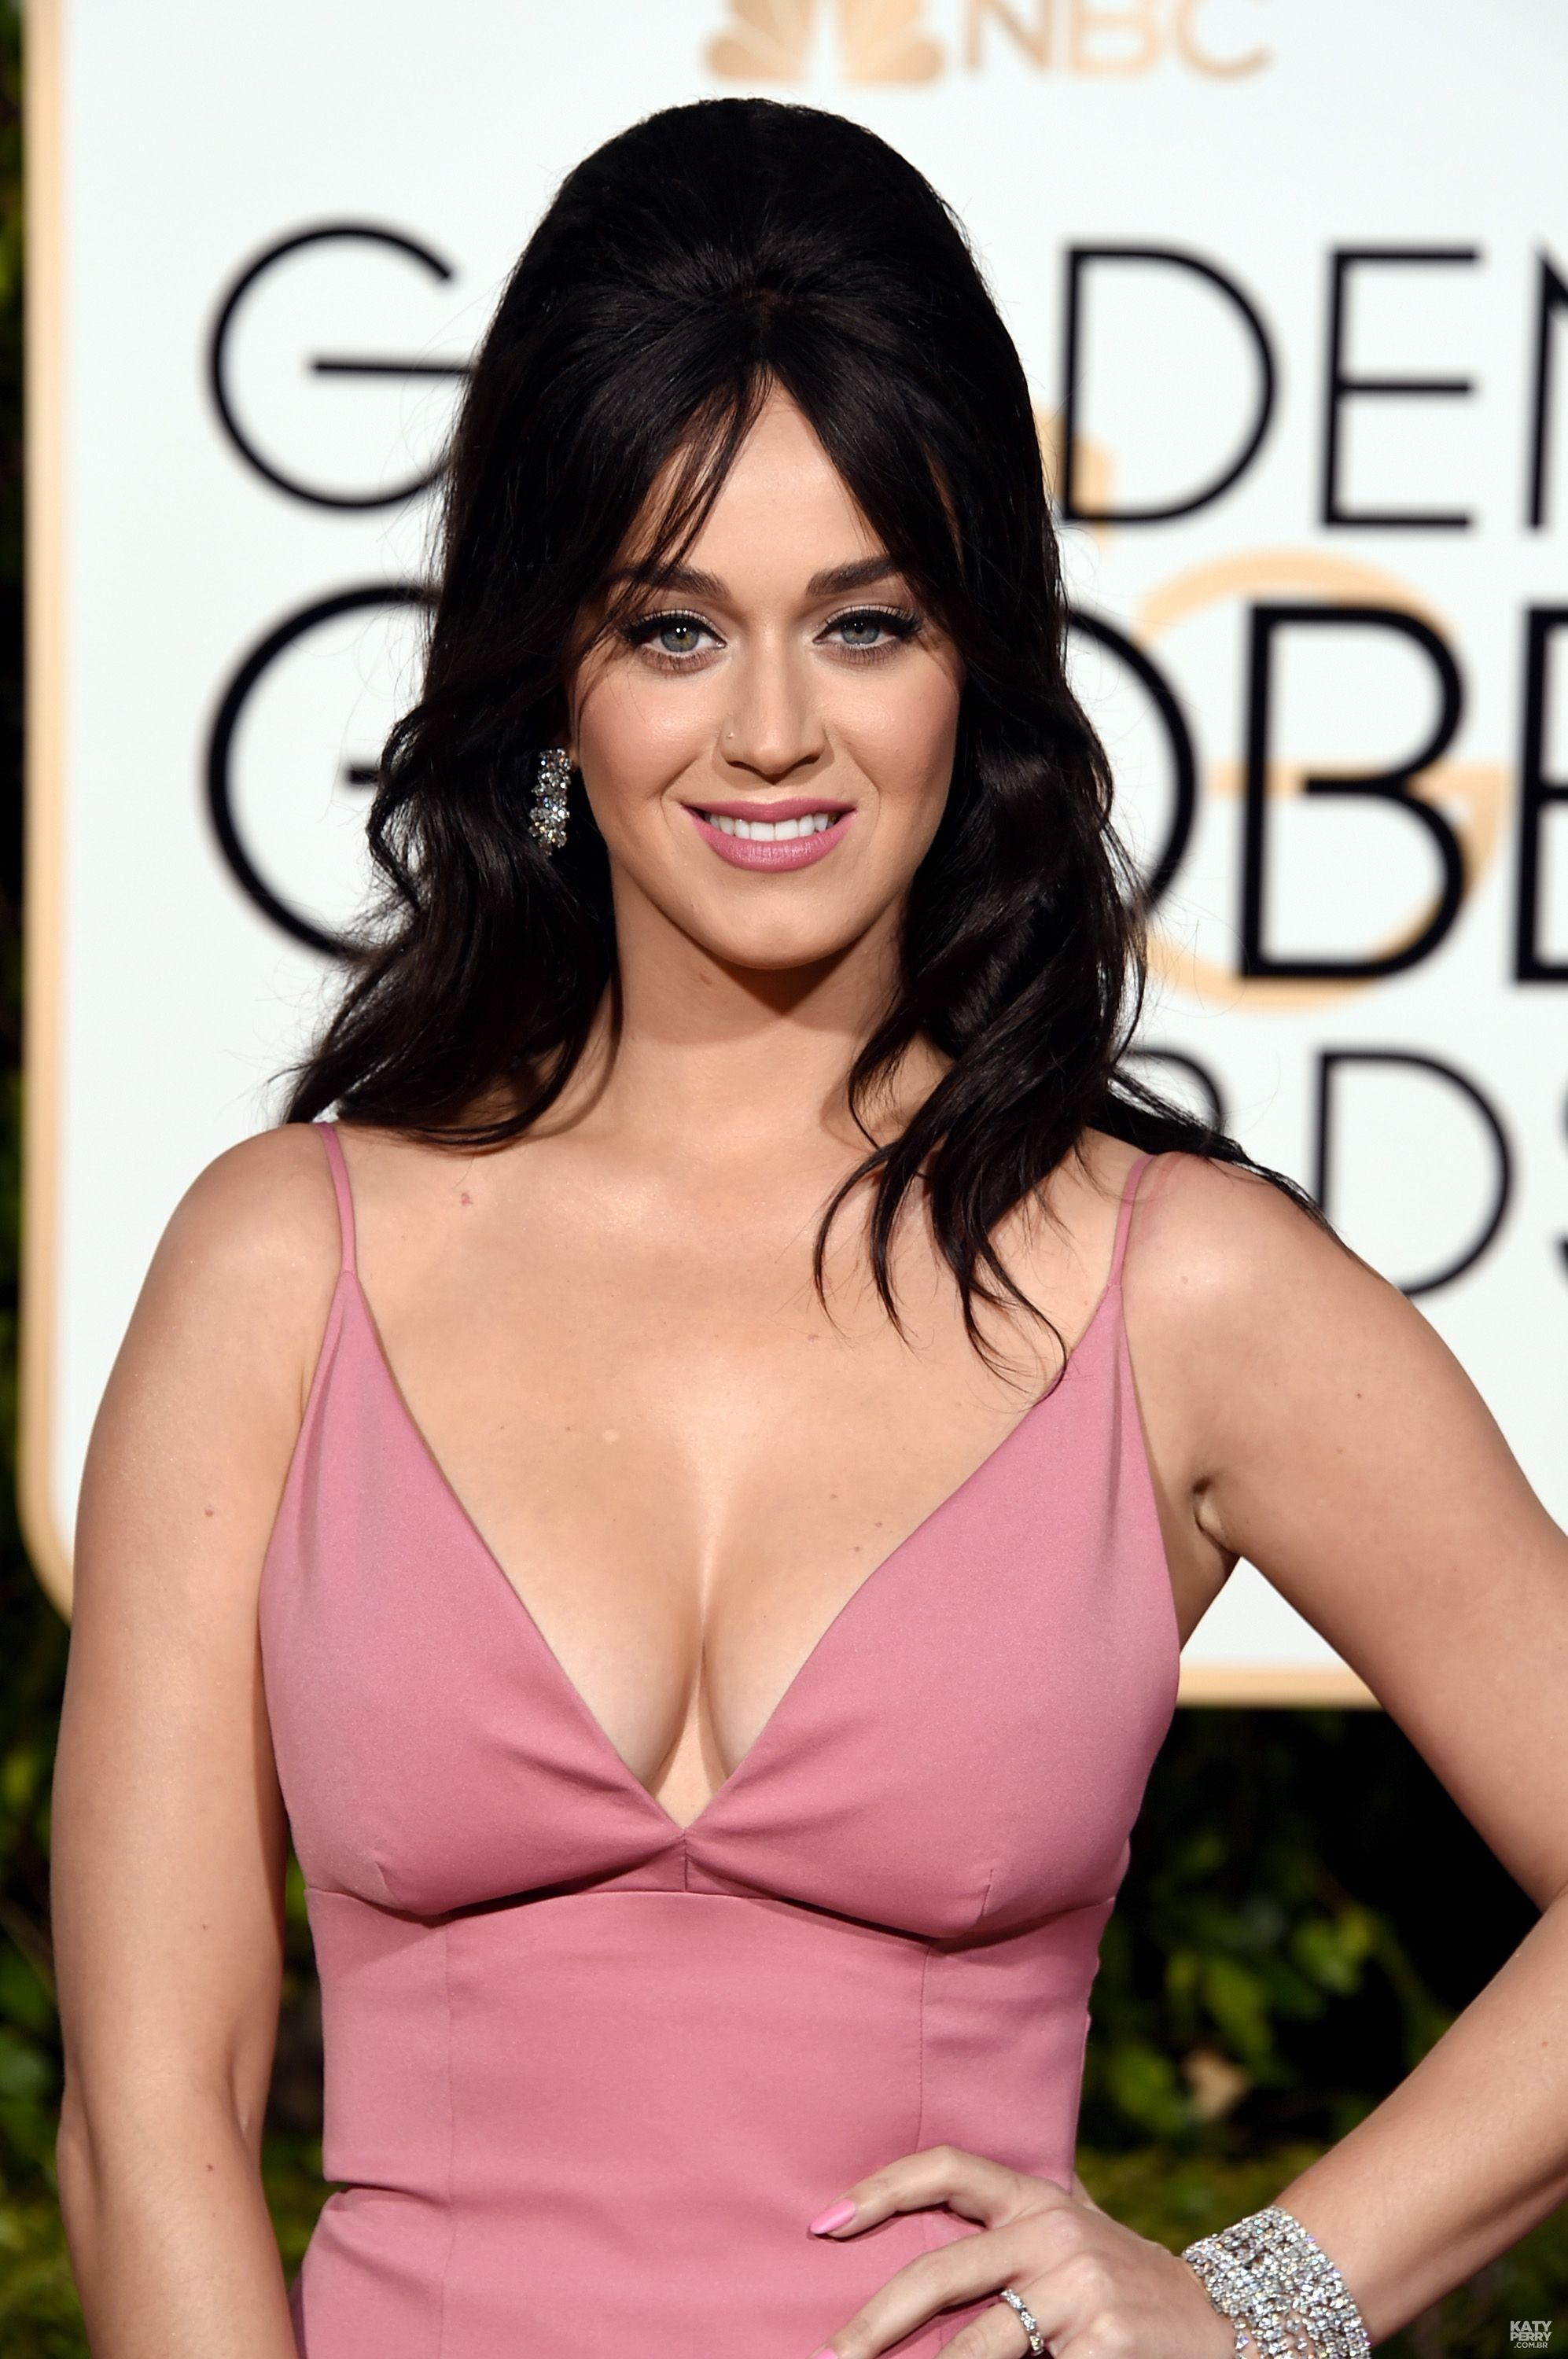 Katy perry photo gallery katy perry pinterest katy perry and